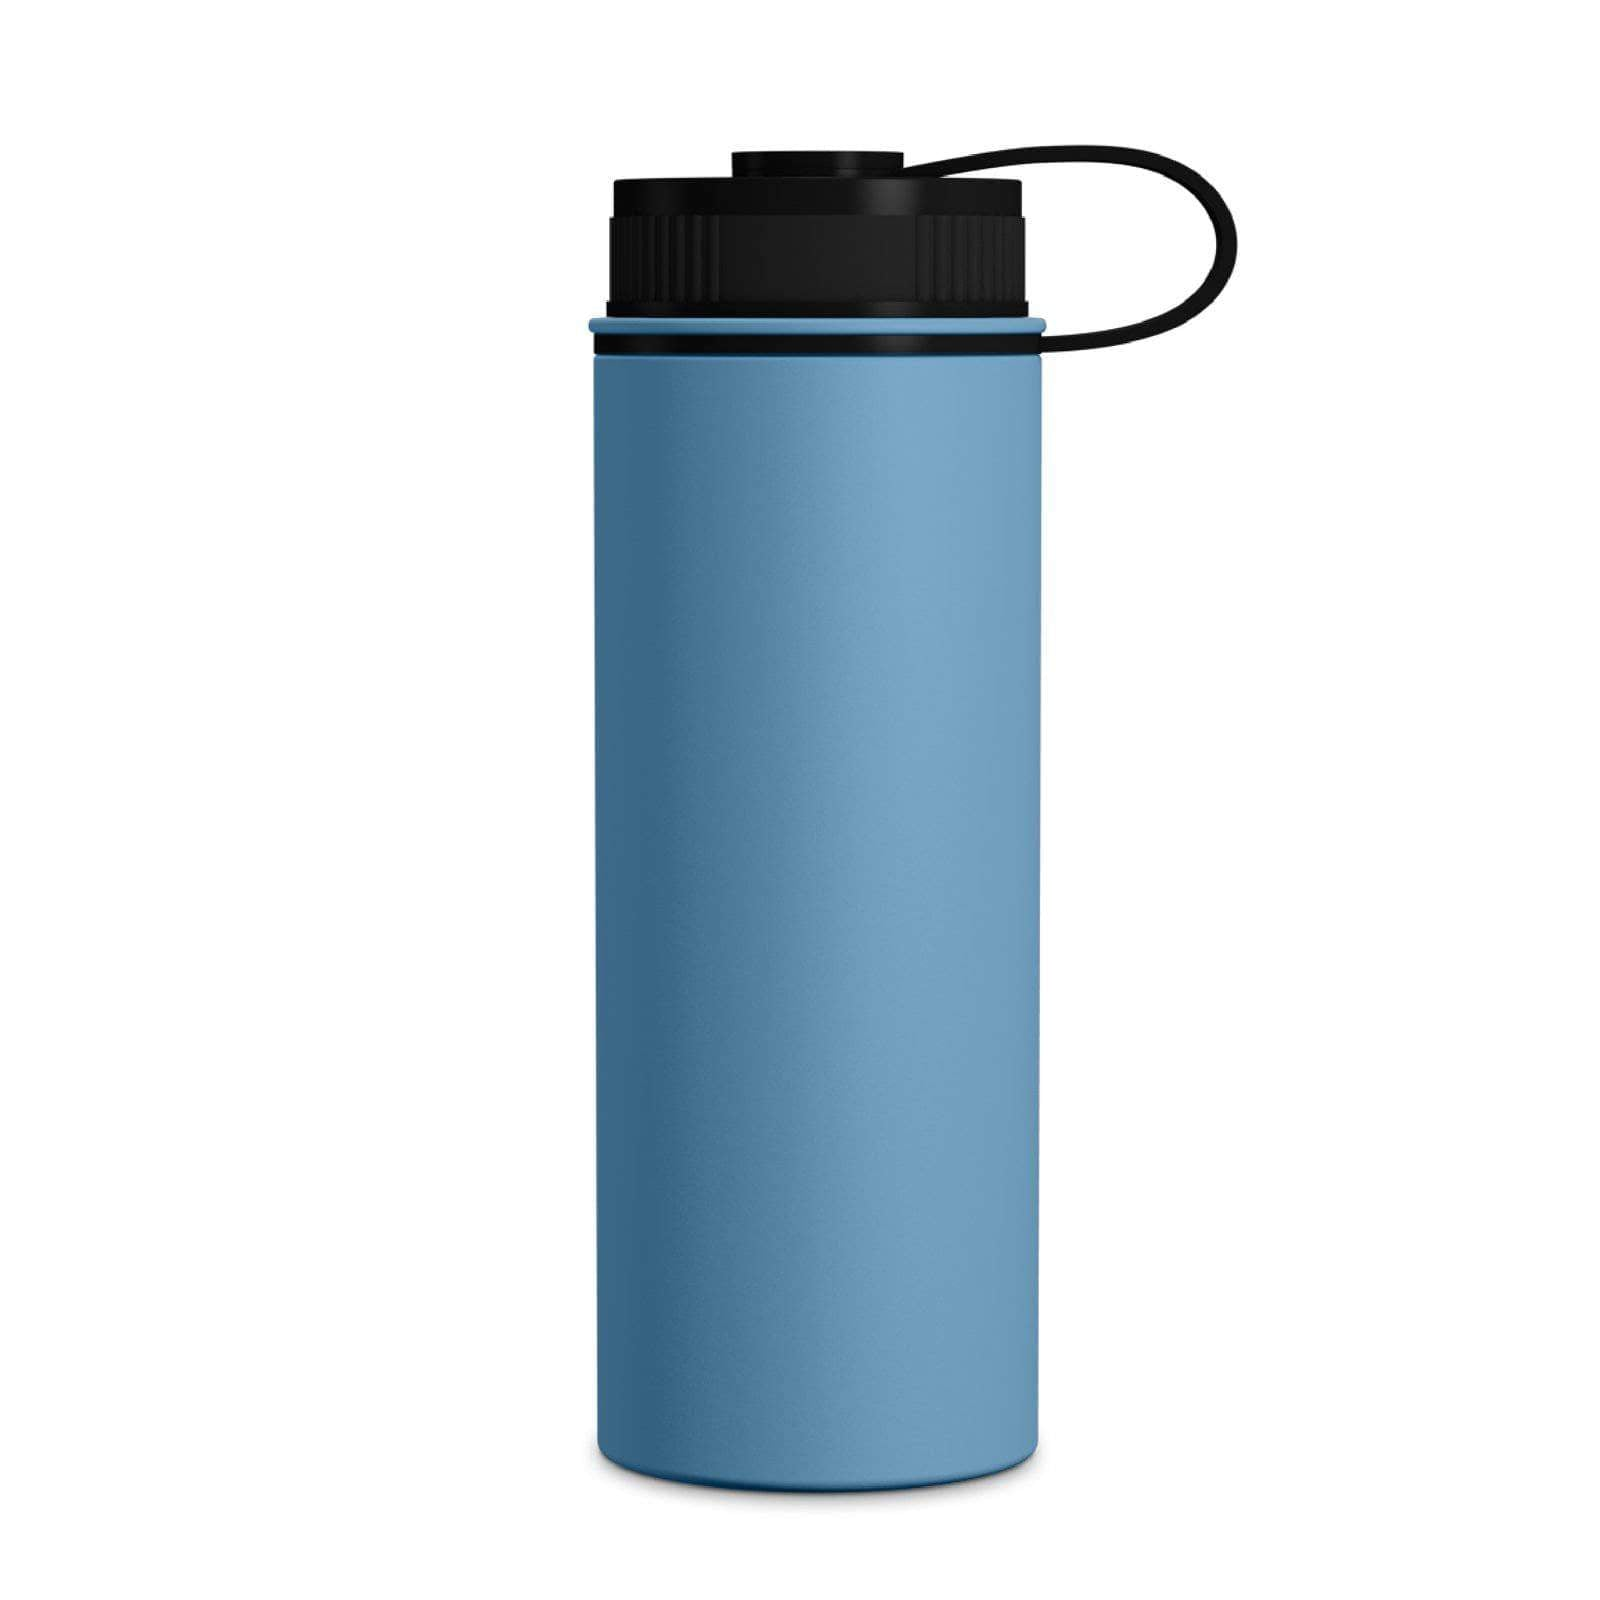 Geo Bottles Pacific Blue 18oz Double Wall Vacuum Insulated Flask, Wide Mouth